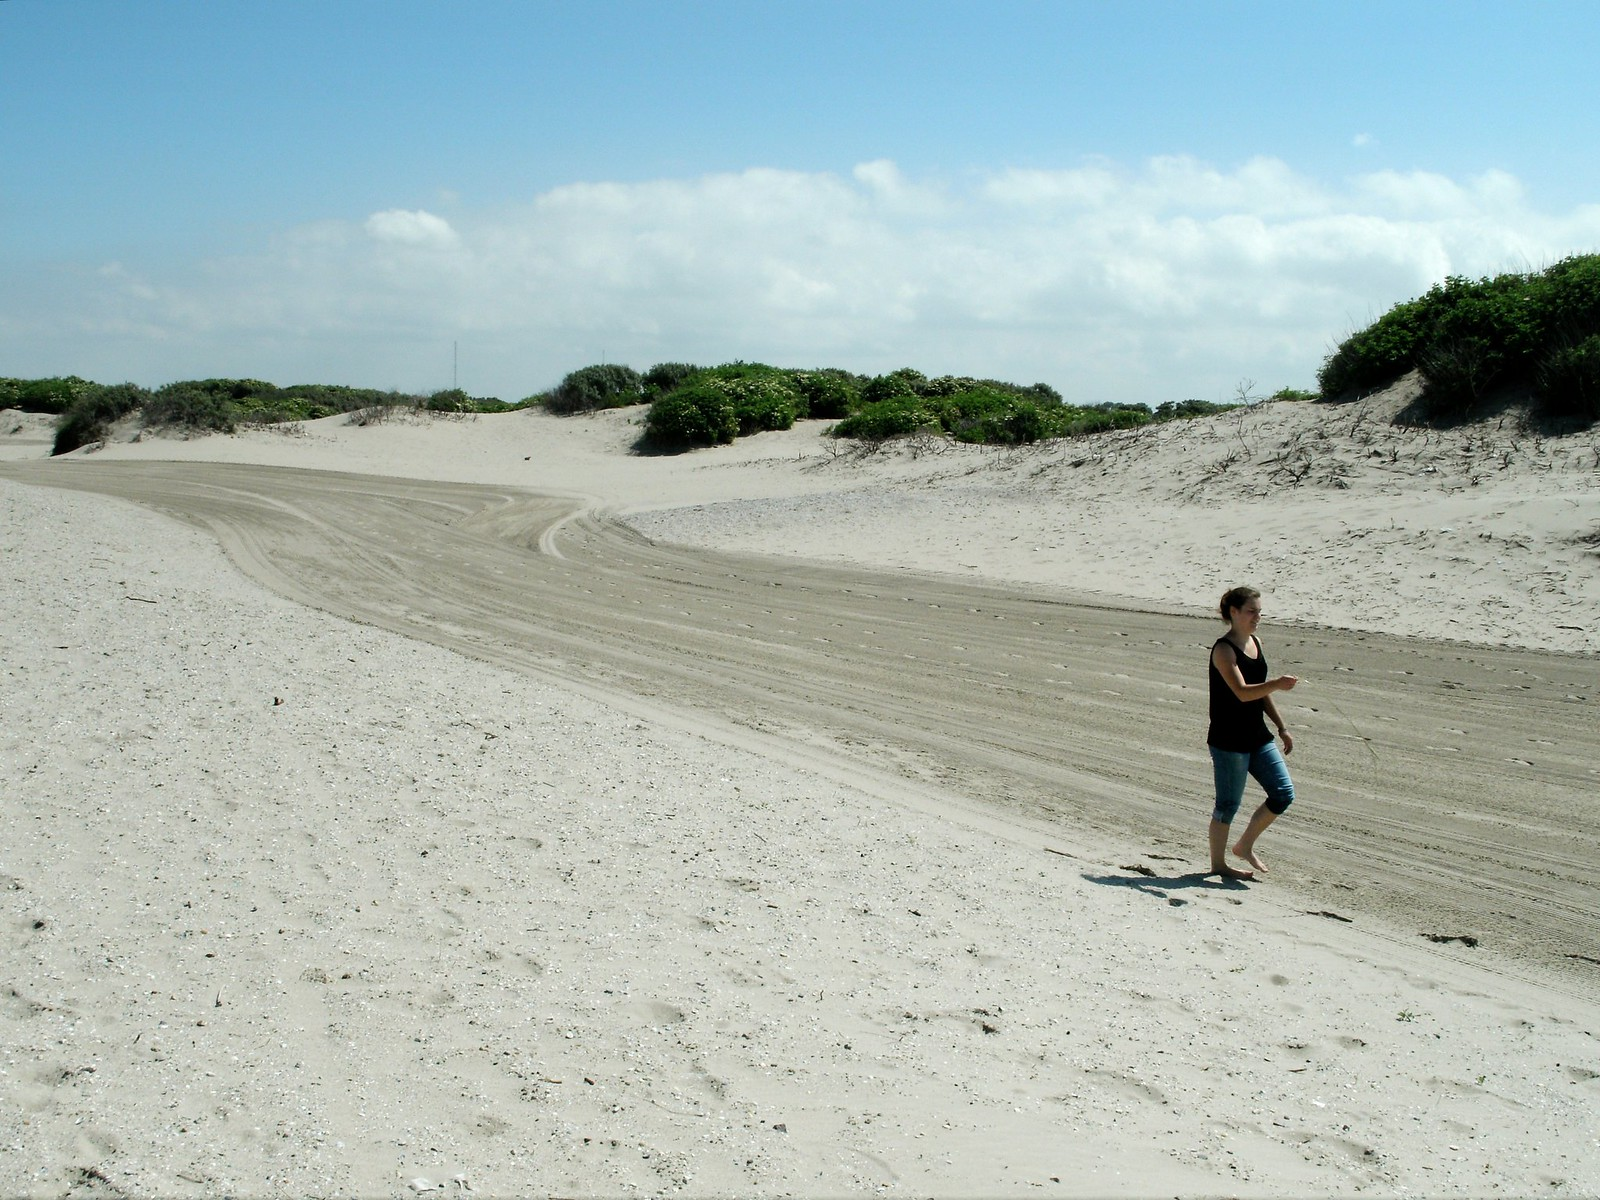 A barefoot girl walks along a stretch of beach where vehicles have left their mark.